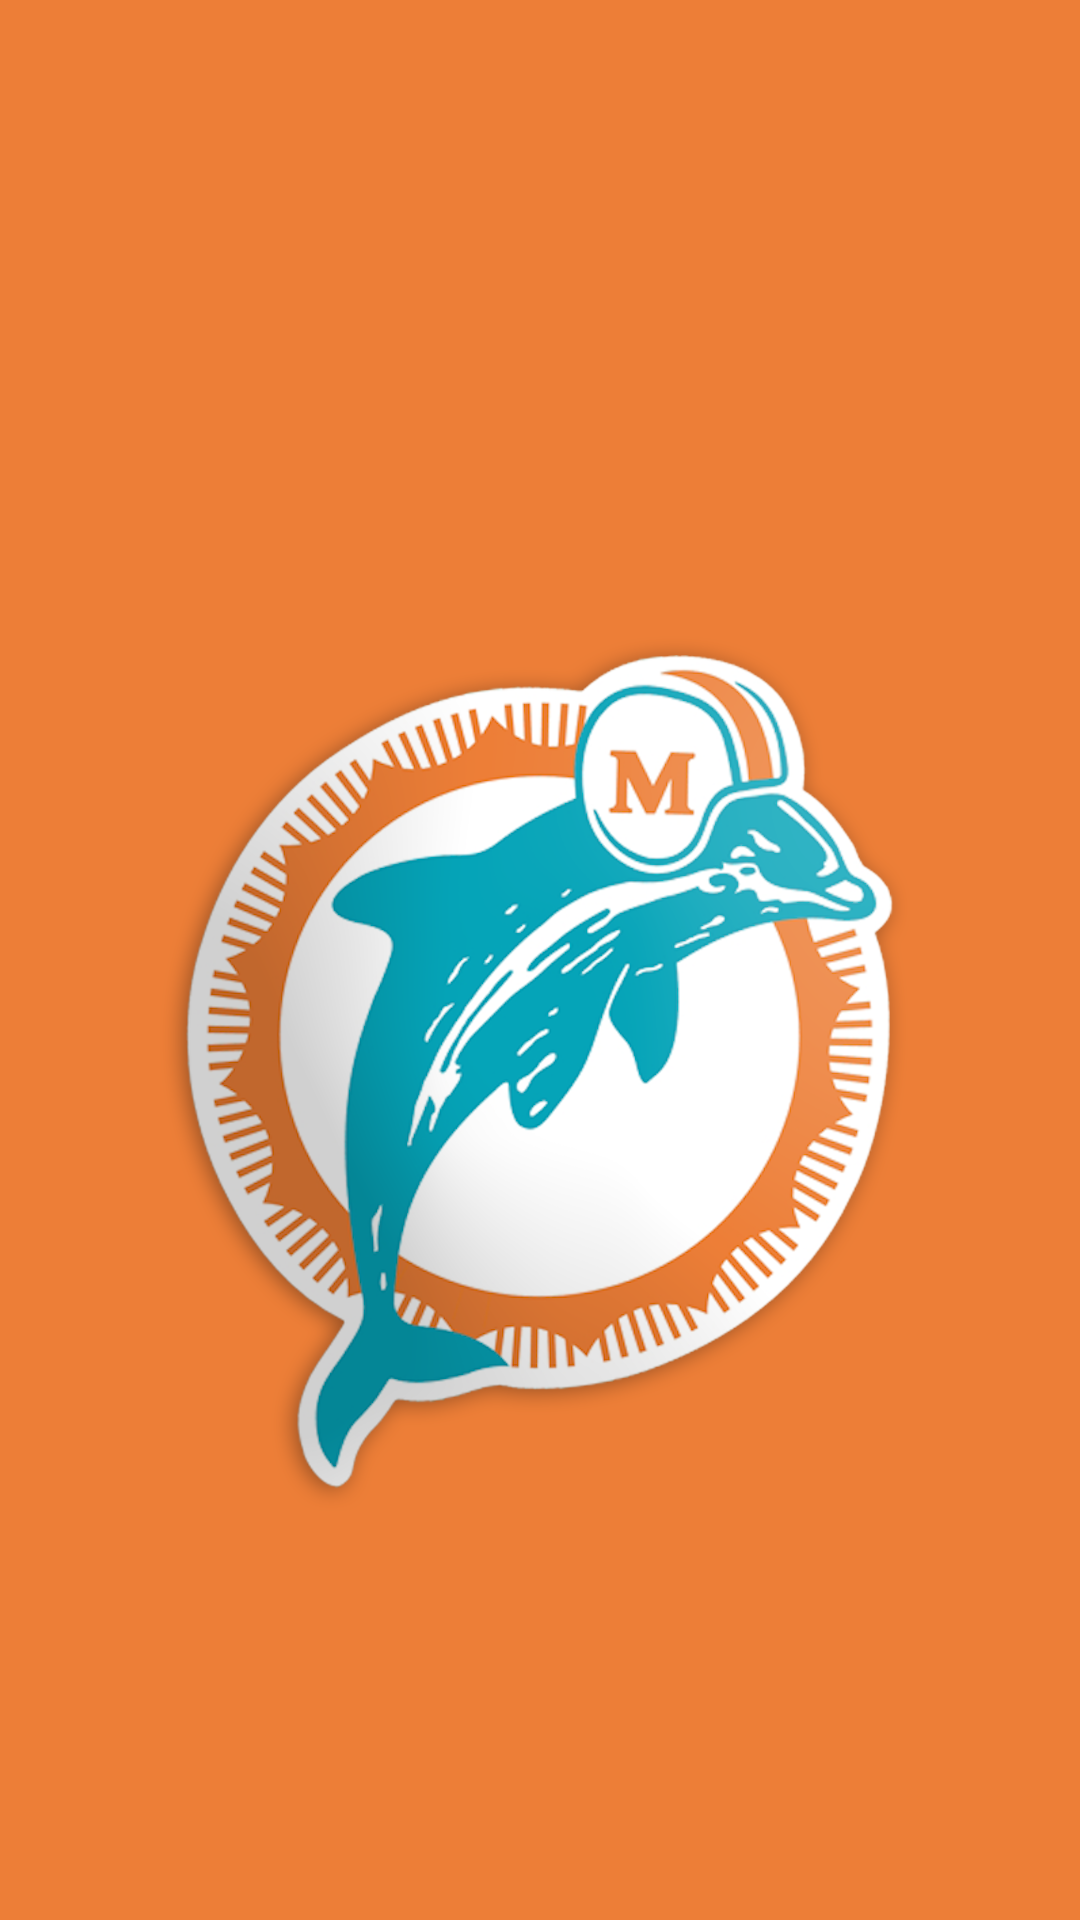 Iphone 67 plus wallpaper request thread page 122 macrumors forums miami dolphins 02g voltagebd Image collections